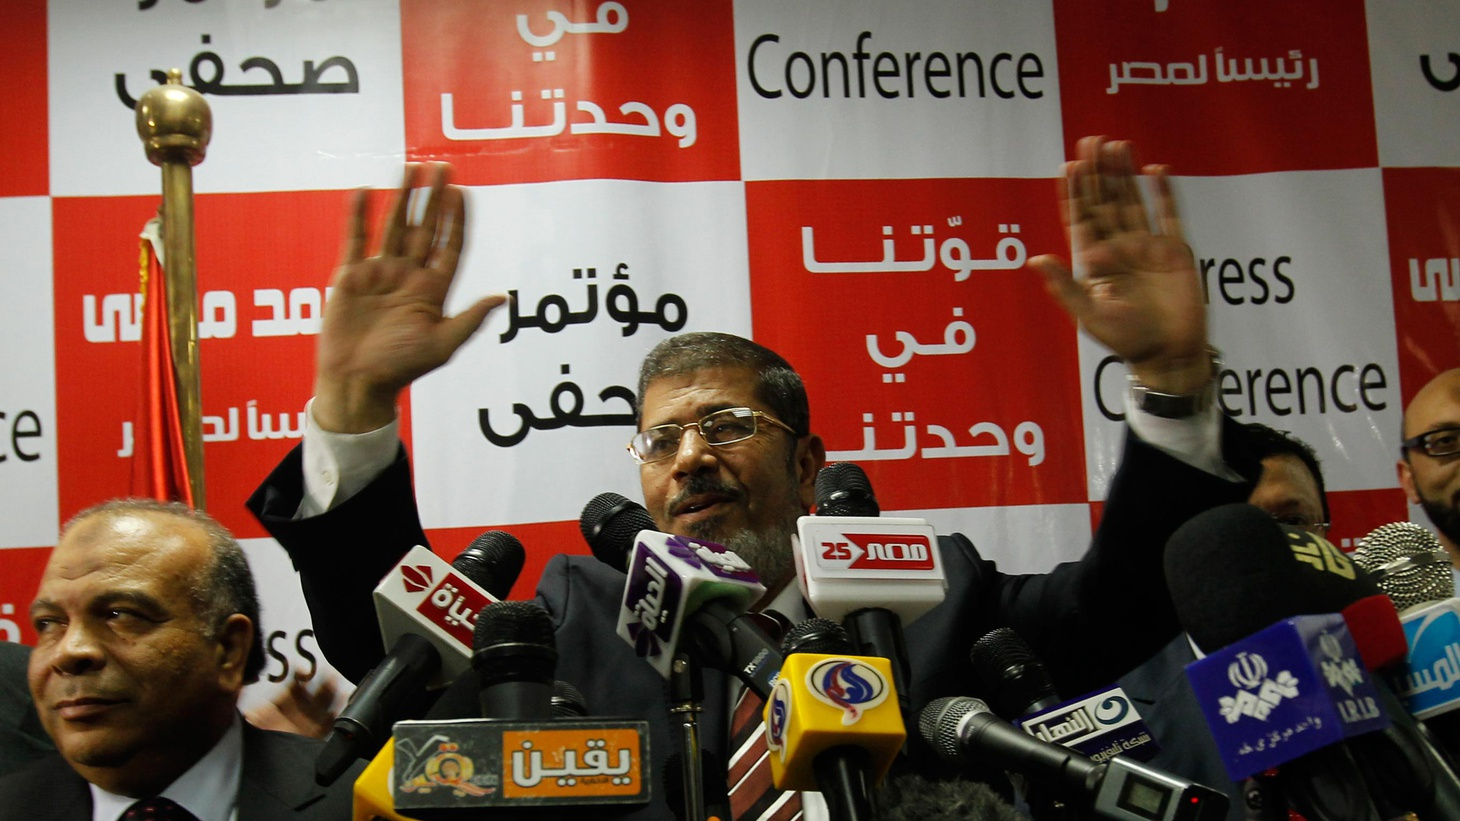 After this weekend's presidential runoff election, the military and the Muslim Brotherhood are still struggling in Egypt.